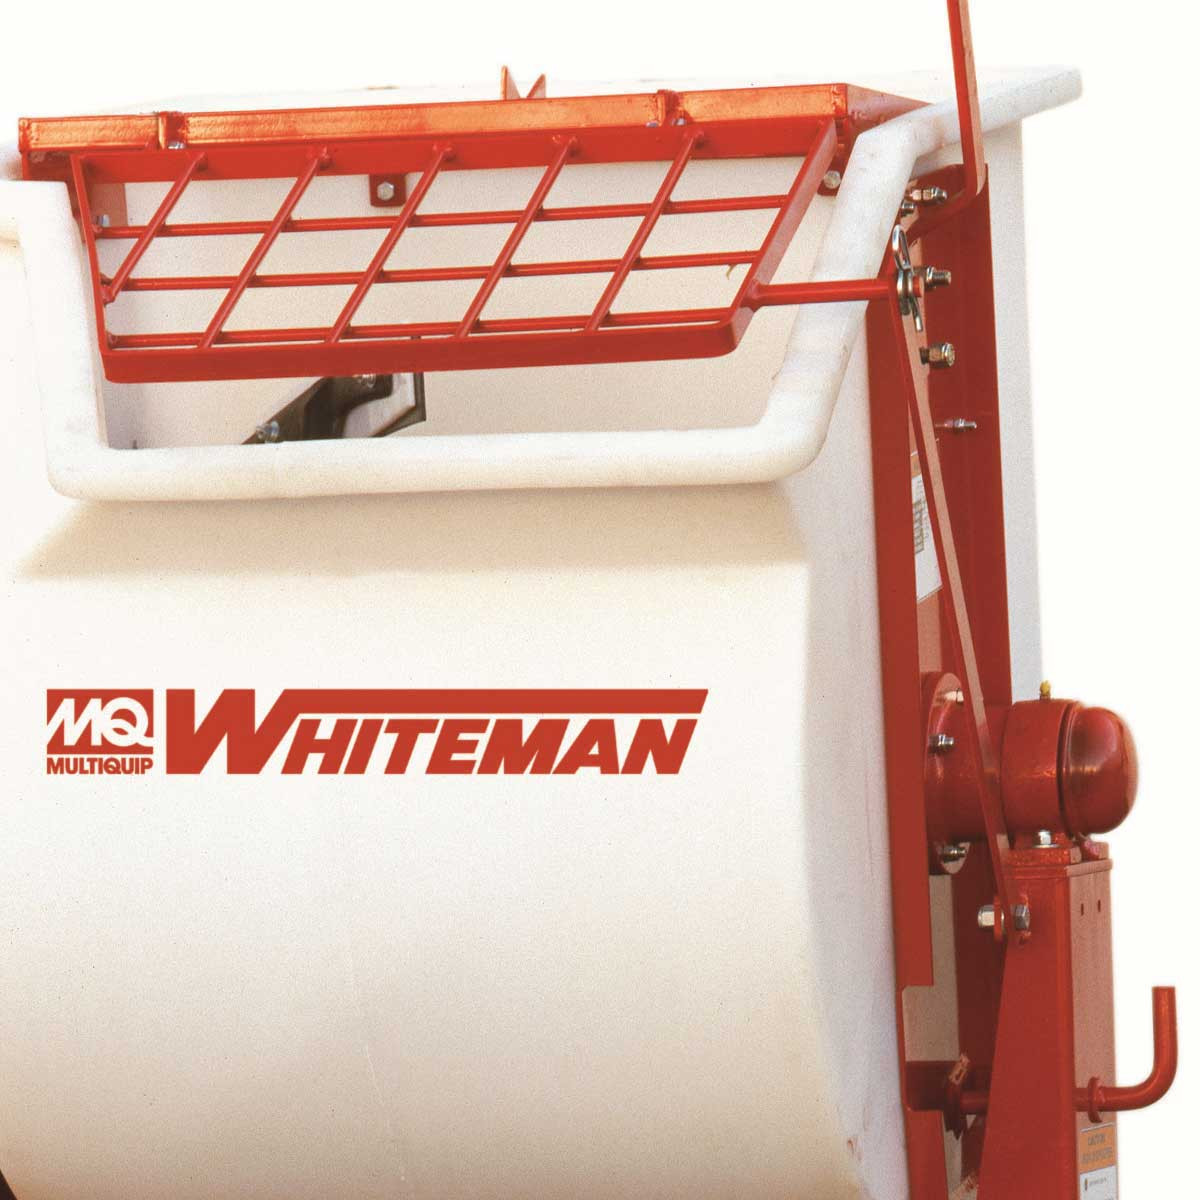 Multiquip Whiteman poly drum